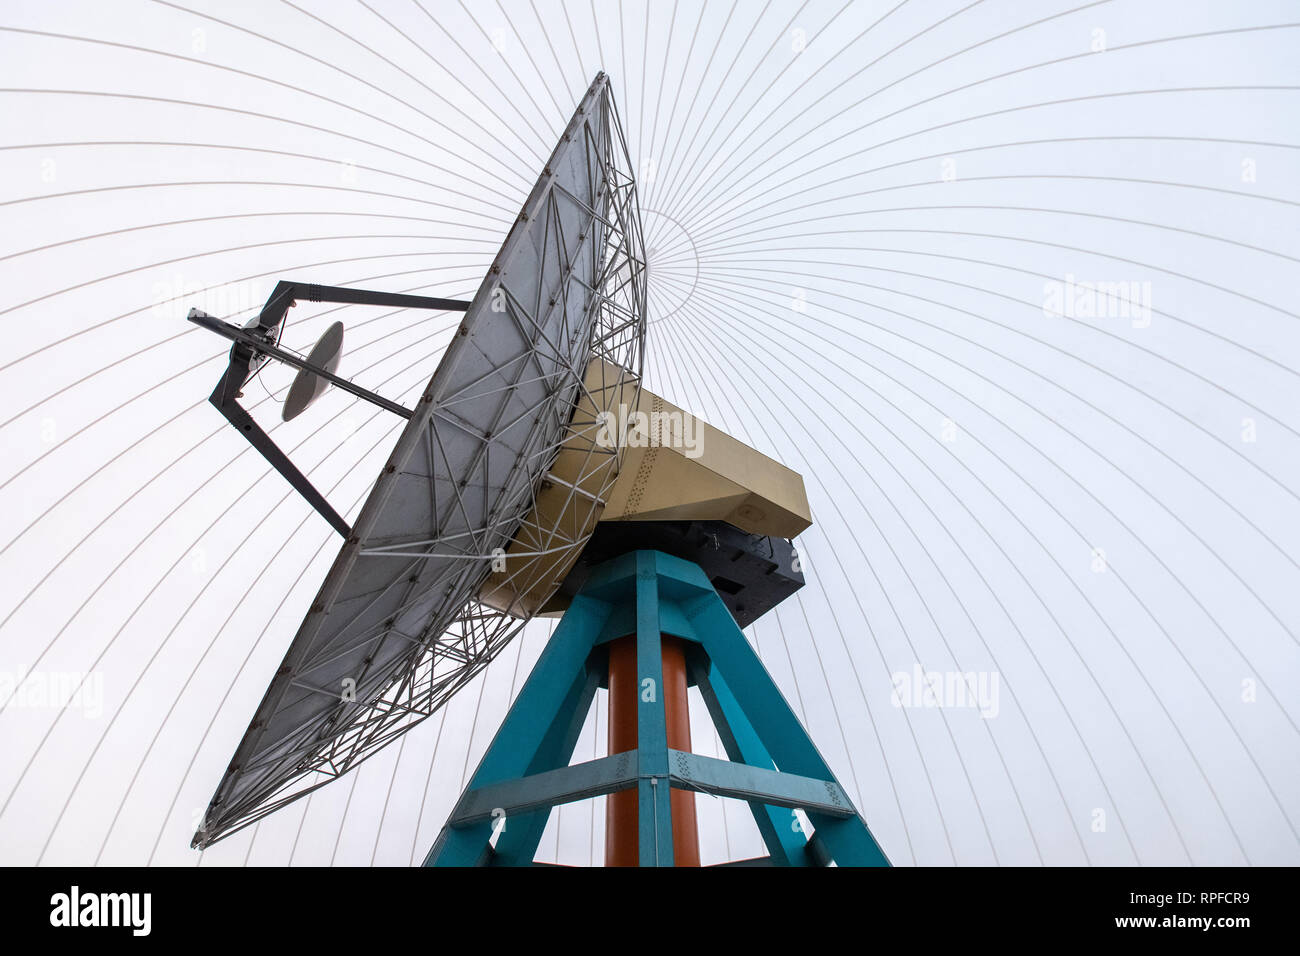 Bochum, Germany. 19th Feb, 2019. There's a parabolic antenna in the radar dome. With the commissioning of a travelling satellite, the observatory in Bochum celebrates a milestone in amateur radio. Qatar OSCAR-100, or QO-100 for short, is said to be the world's first satellite to use the non-commercial amateur radio service that rotates with the Earth instead of orbiting it. (to dpa: 'Sparks like an astronaut: first travelling satellite for amateurs' ) Credit: Marcel Kusch/dpa/Alamy Live News - Stock Image